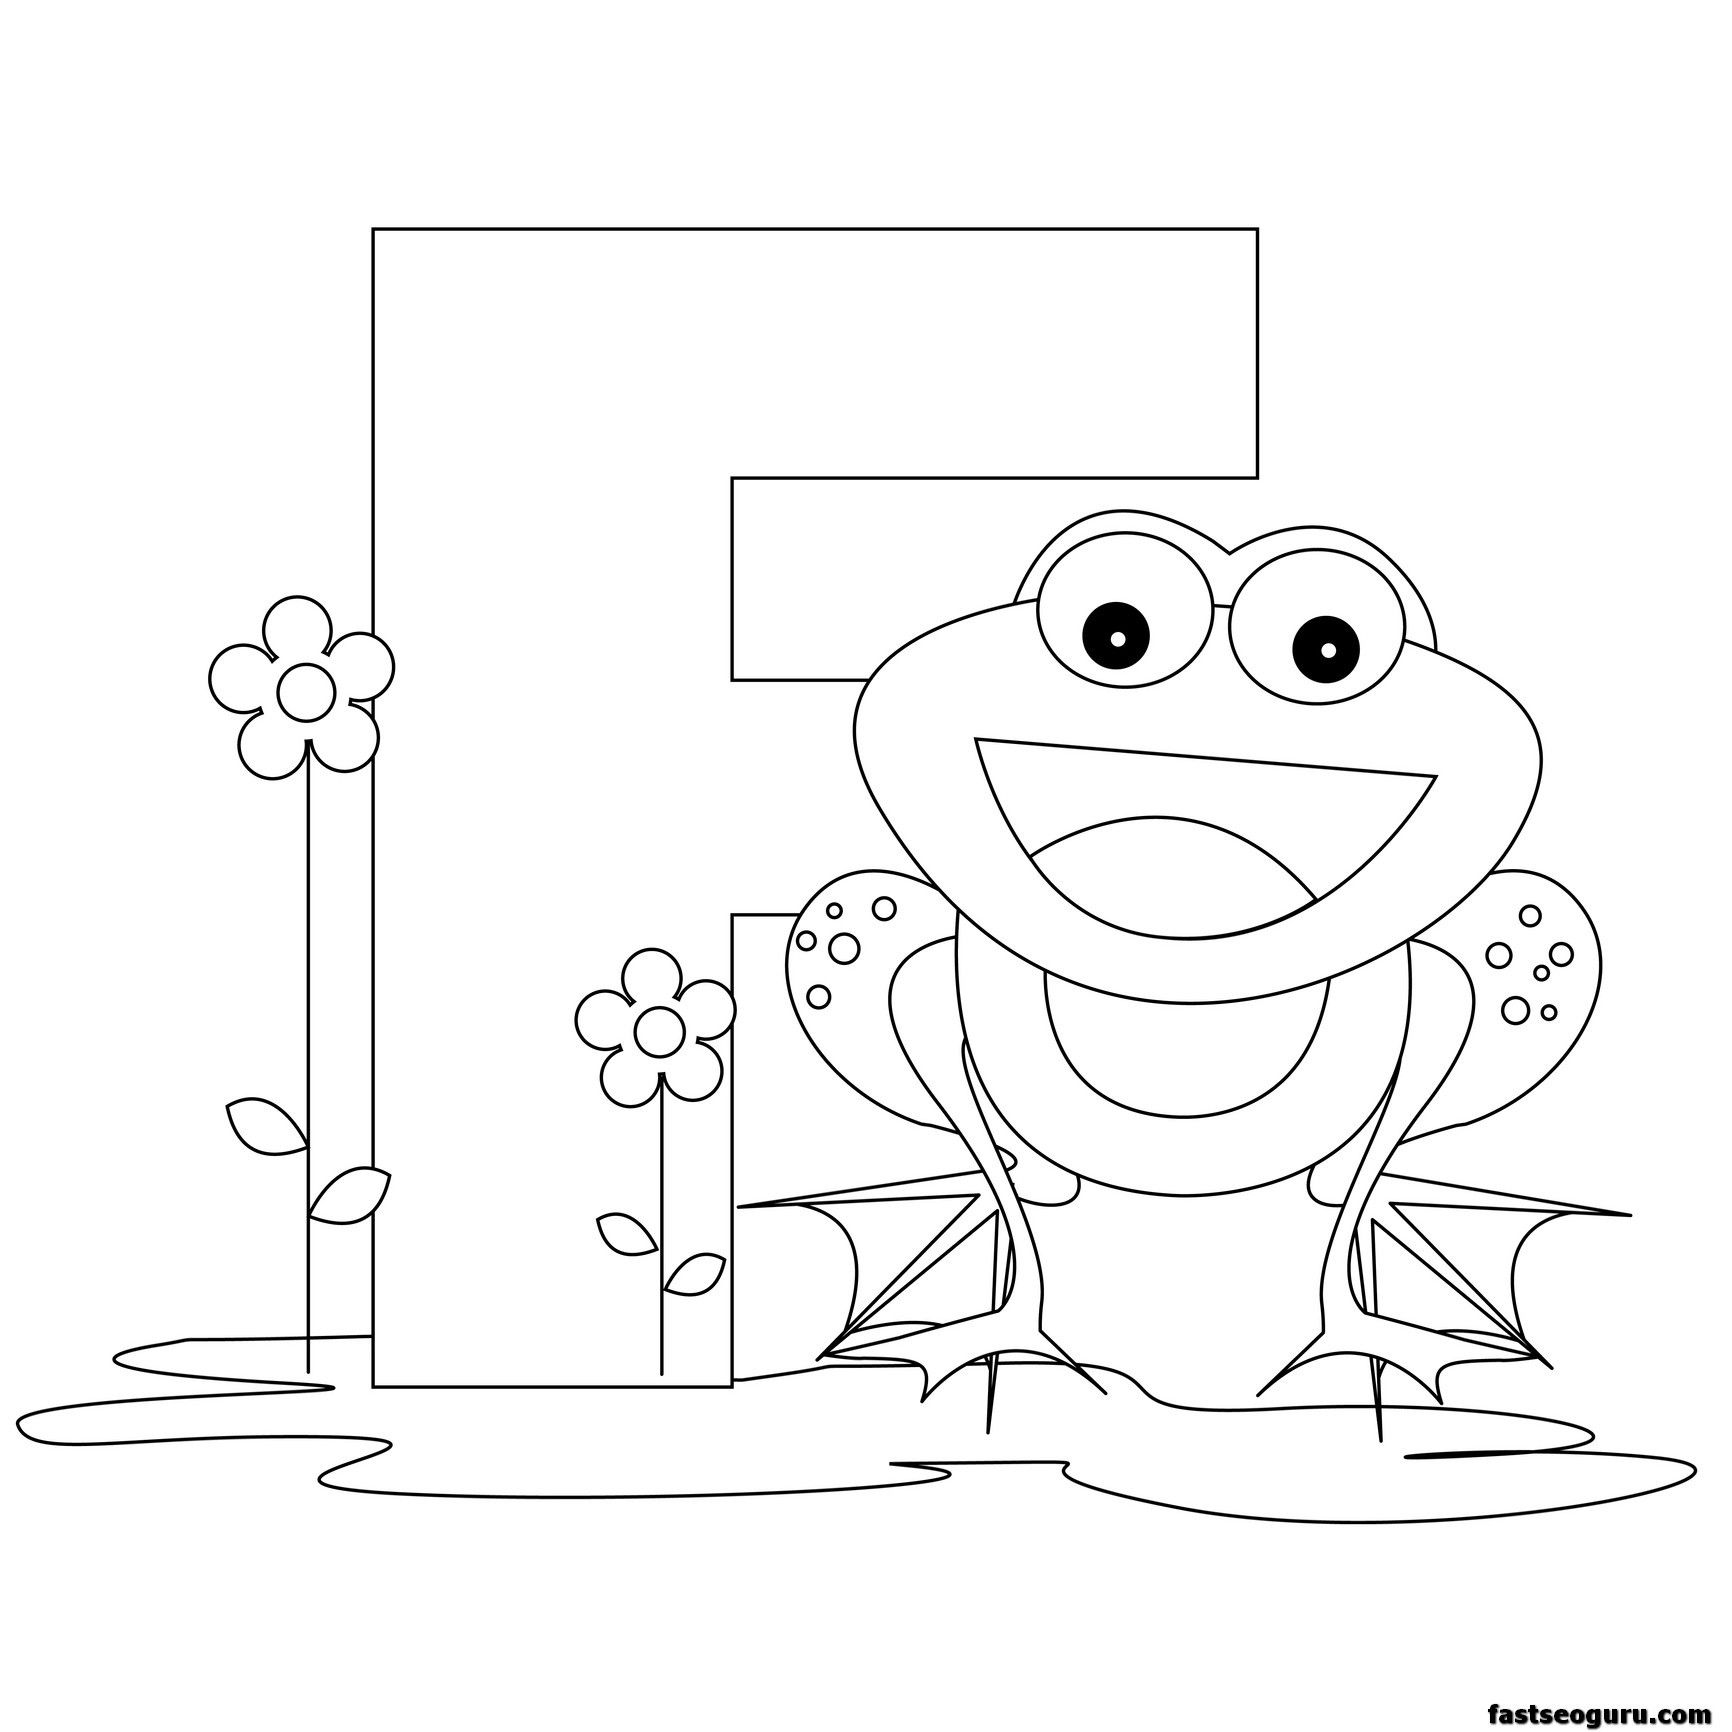 printable alphabet coloring pages animals | Printable Animal Alphabet worksheets Letter F For Frog ...